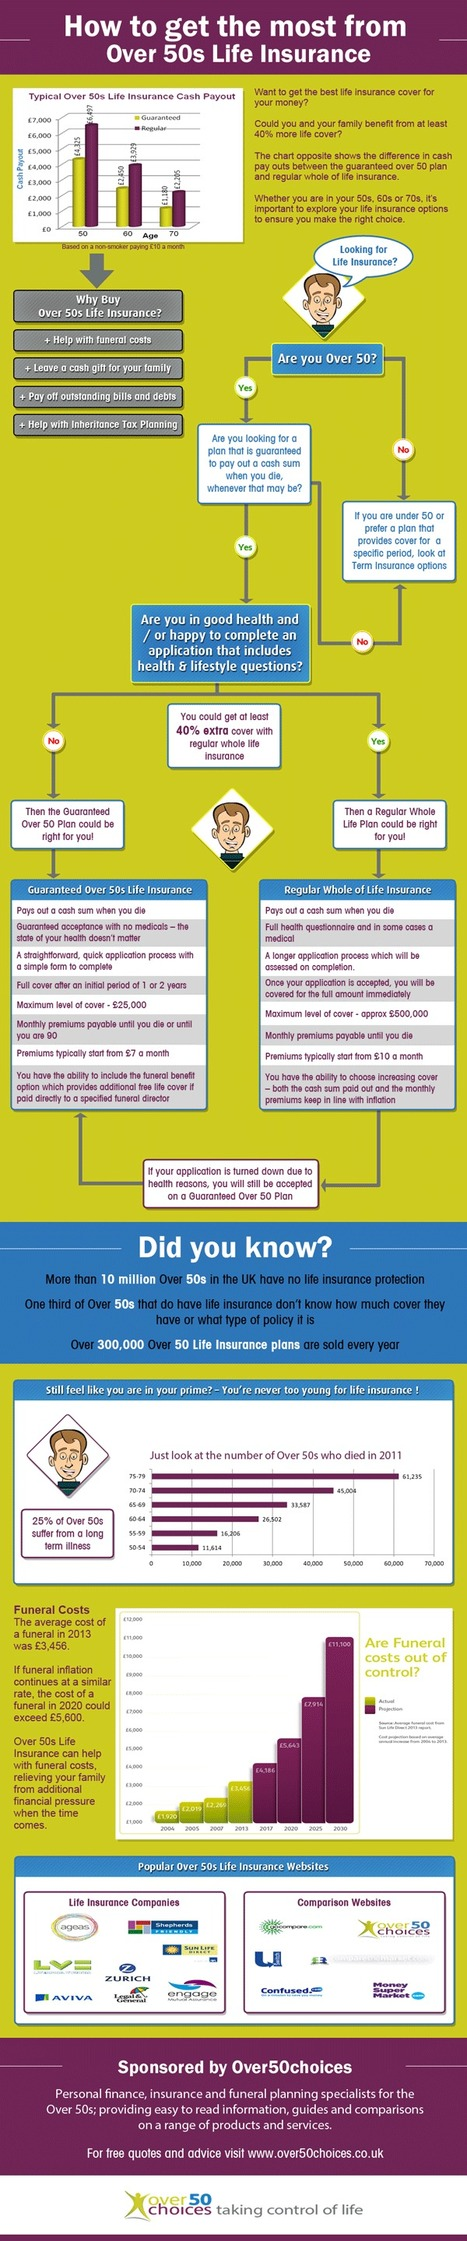 Over 50s Life Insurance Infographic   over 50s   Scoop.it